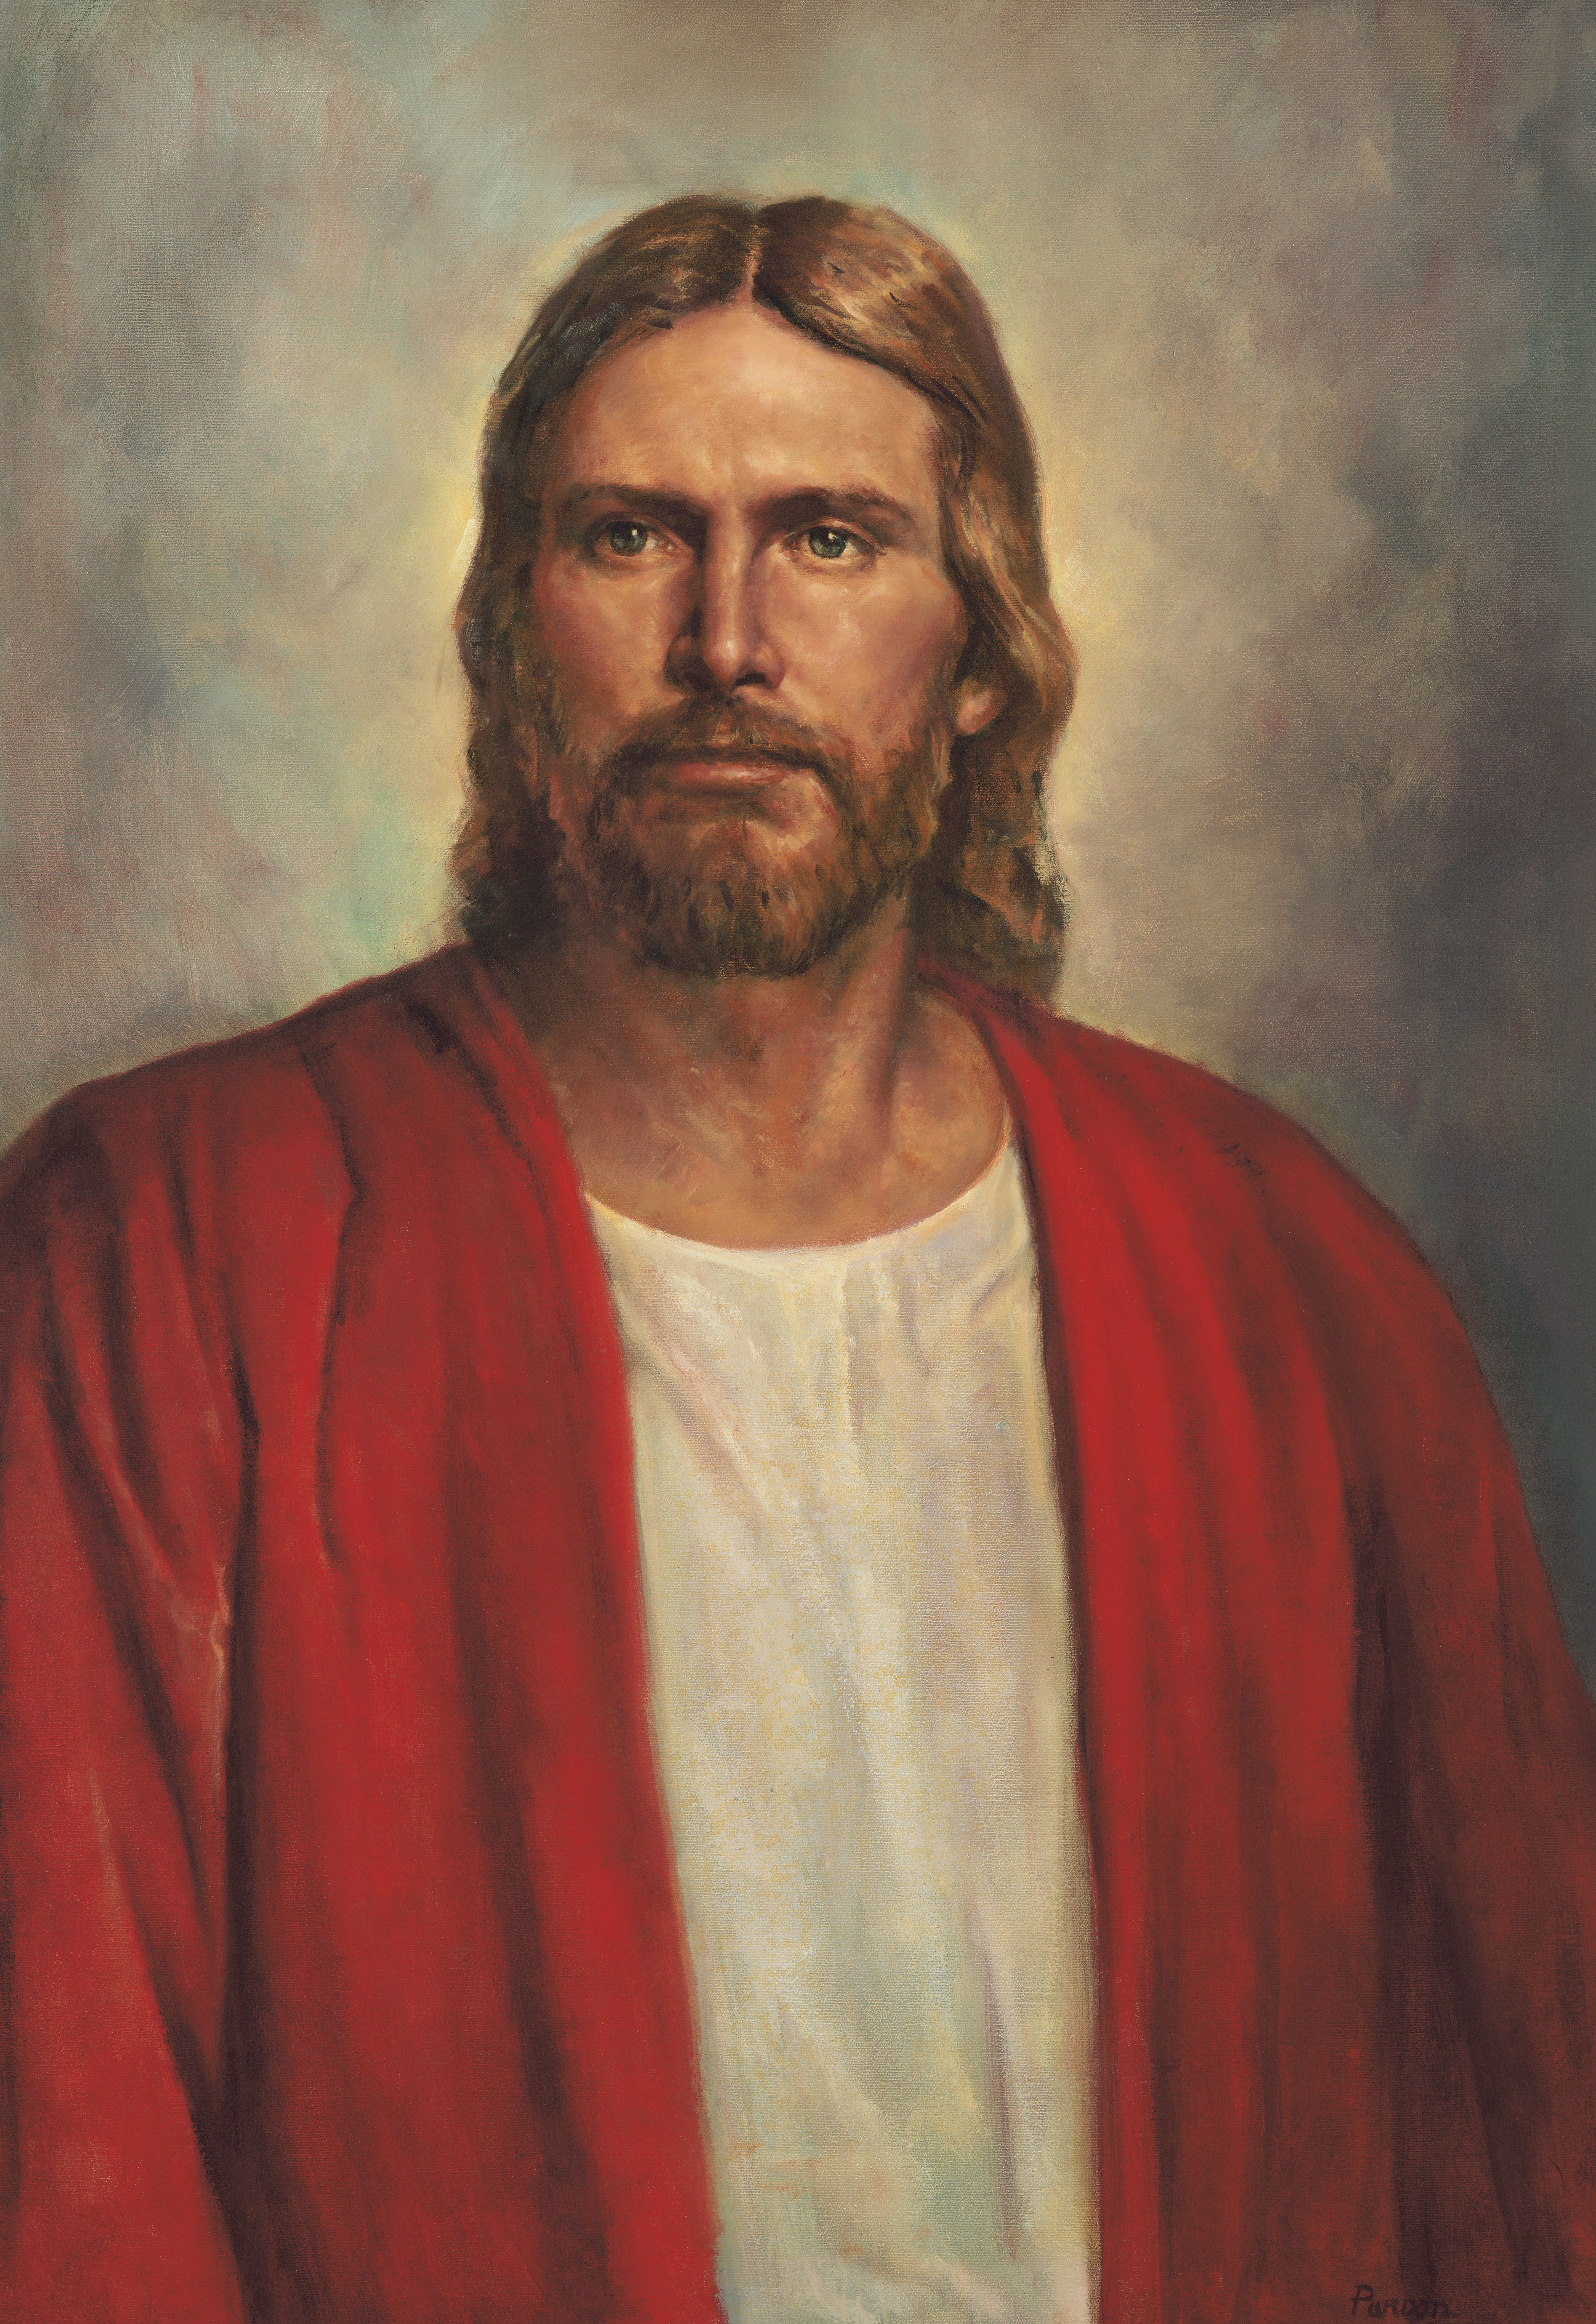 Jesus the Christ, by Del Parson (62572); GAK 240; Primary manual 1-03; Primary manual 2-03; Primary manual 3-09; Primary manual 4-09; Primary manual 5-48; Primary manual 7-01; John 14:16–18, 26–27